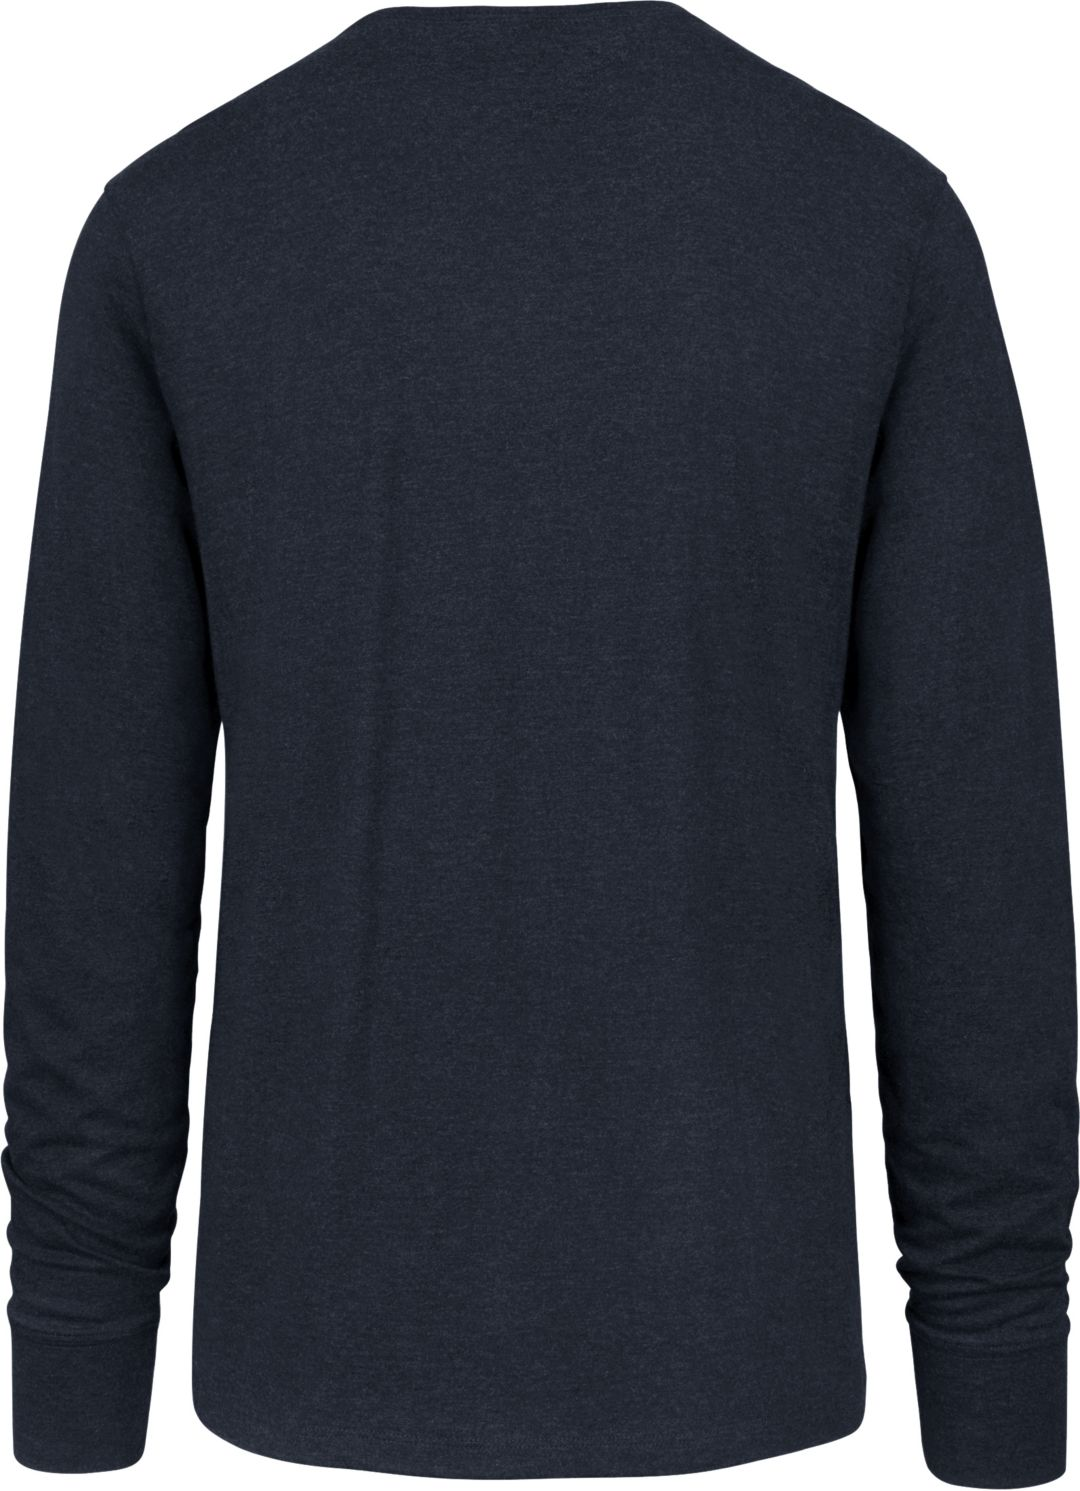 e2849030 '47 Men's Chicago Bears Monsters of the Midway Club Navy Long Sleeve Shirt